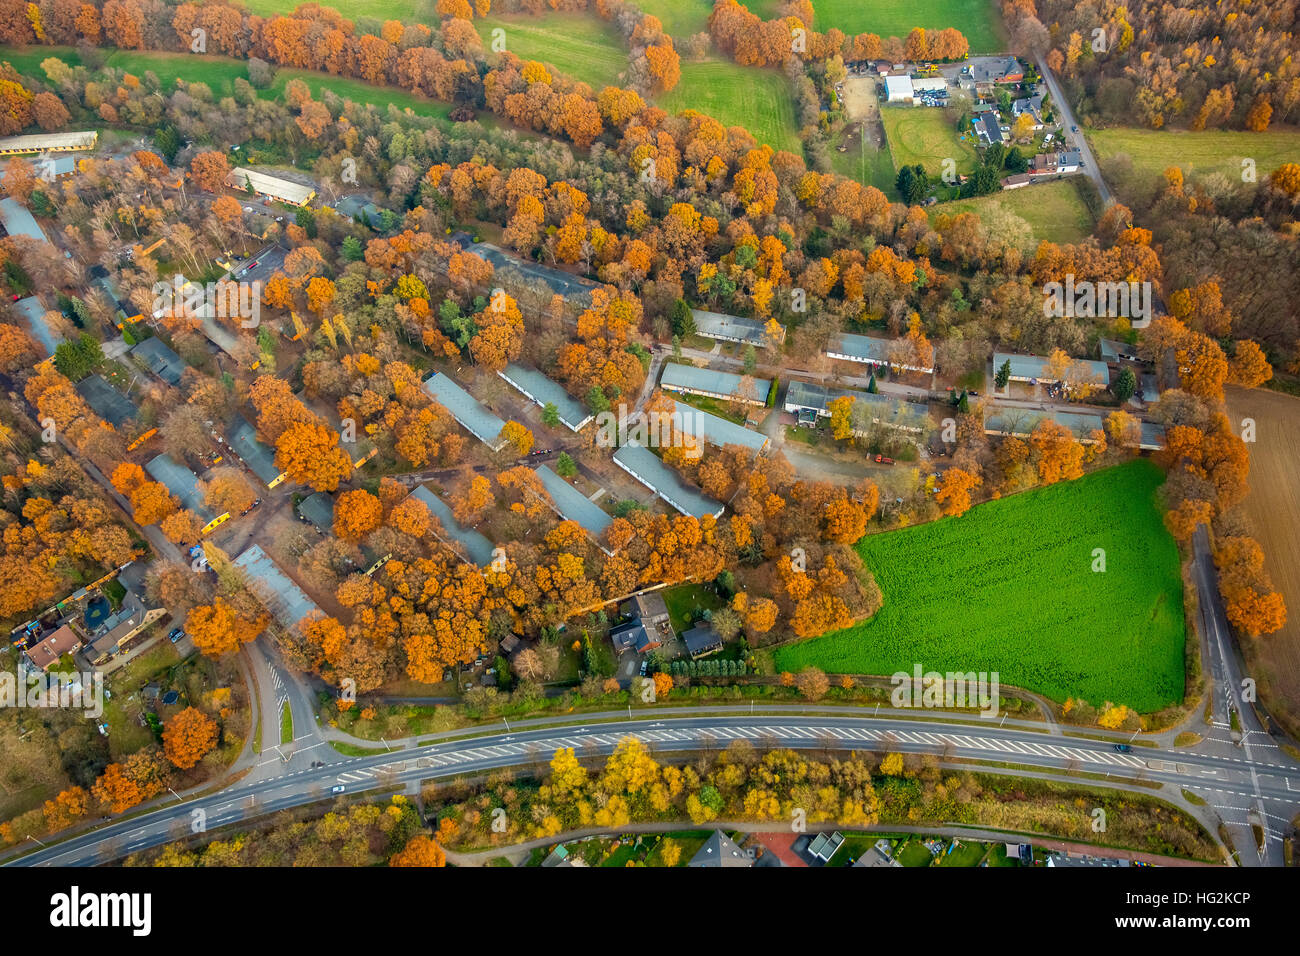 Aerial view, refugee camp of Caritas Dinslaken, unemployment project, at the Fliehburg, Dinslaken, Ruhr aeria, - Stock Image